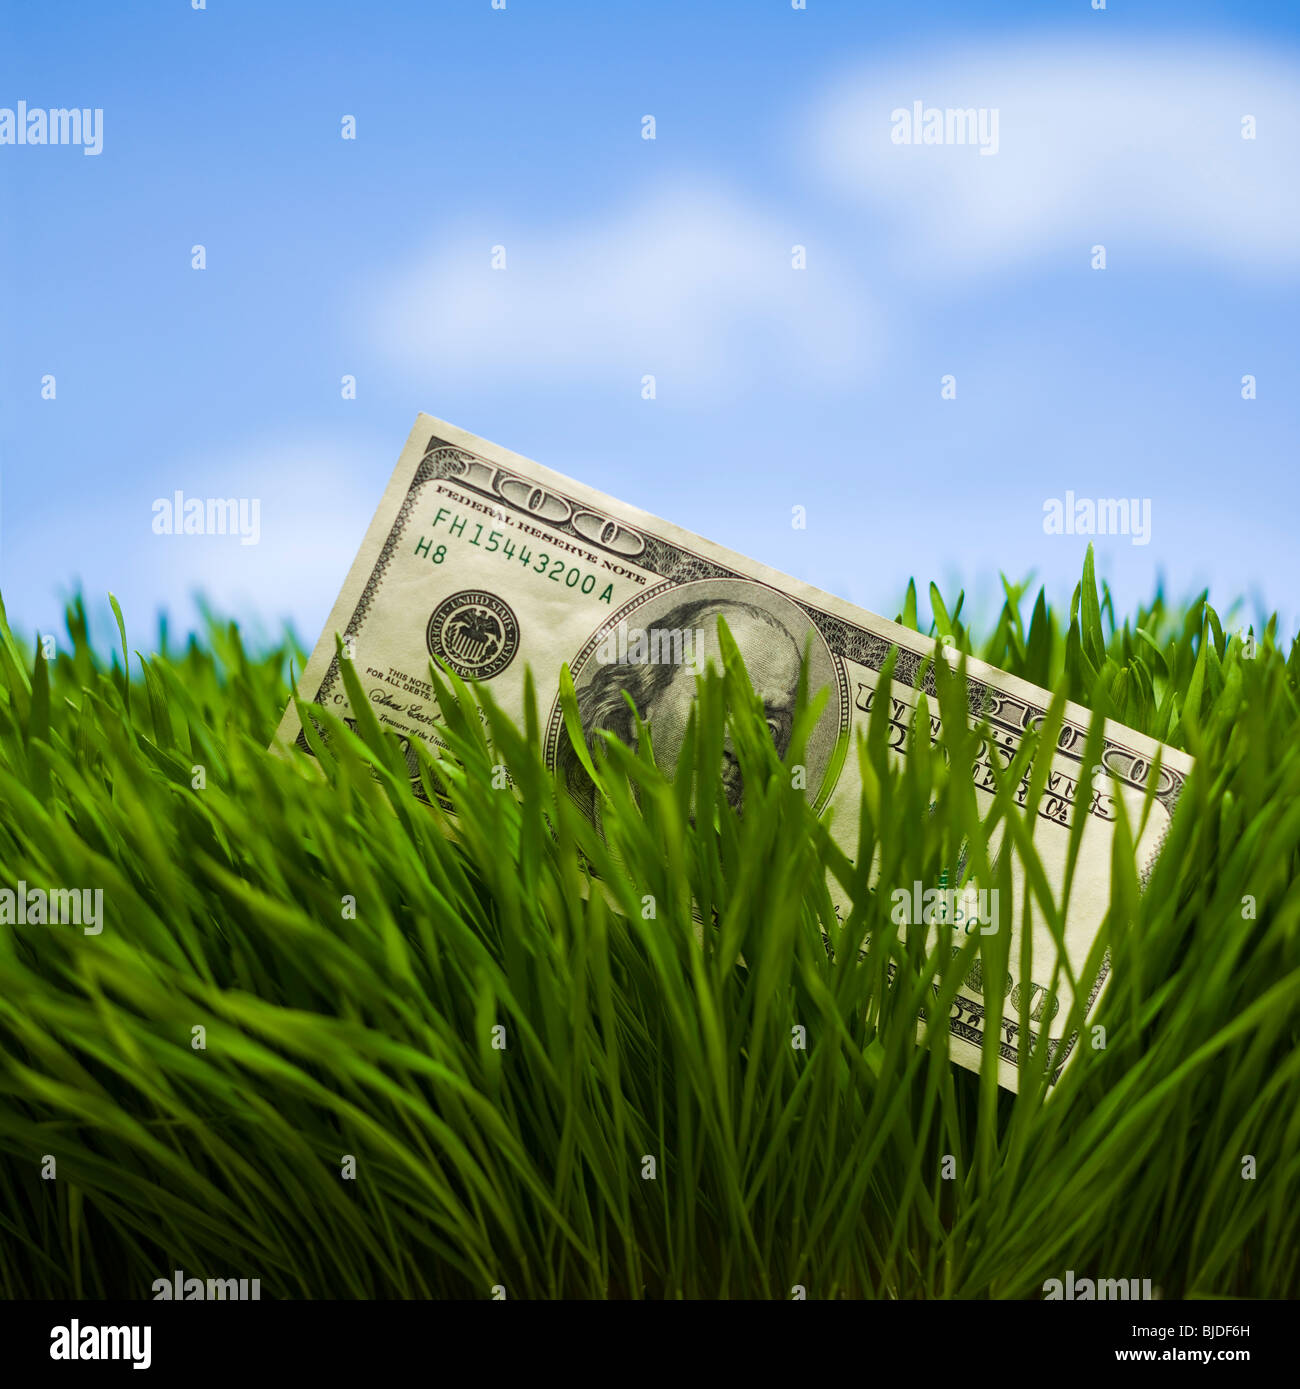 100 dollar bill in the grass. - Stock Image